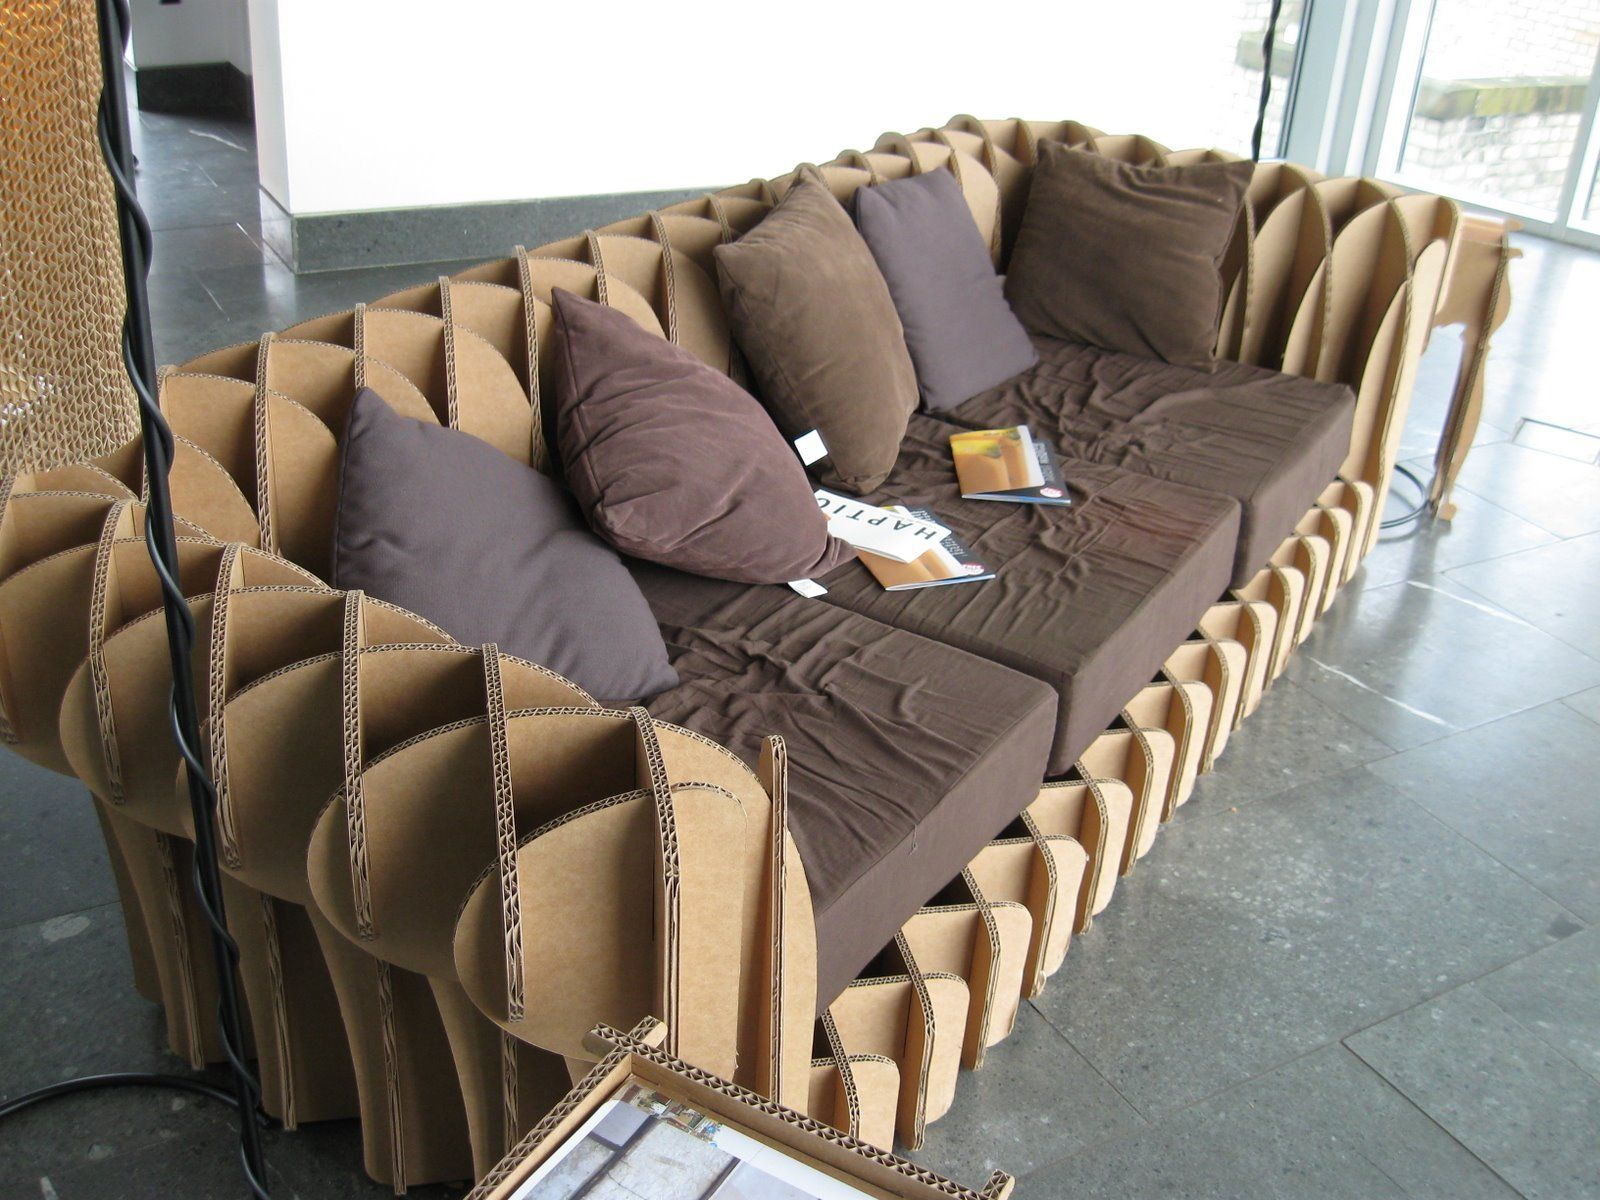 Comfortable cardboard chair designs - Comfortable Cardboard Sofa With Soft Decoraive Cushions